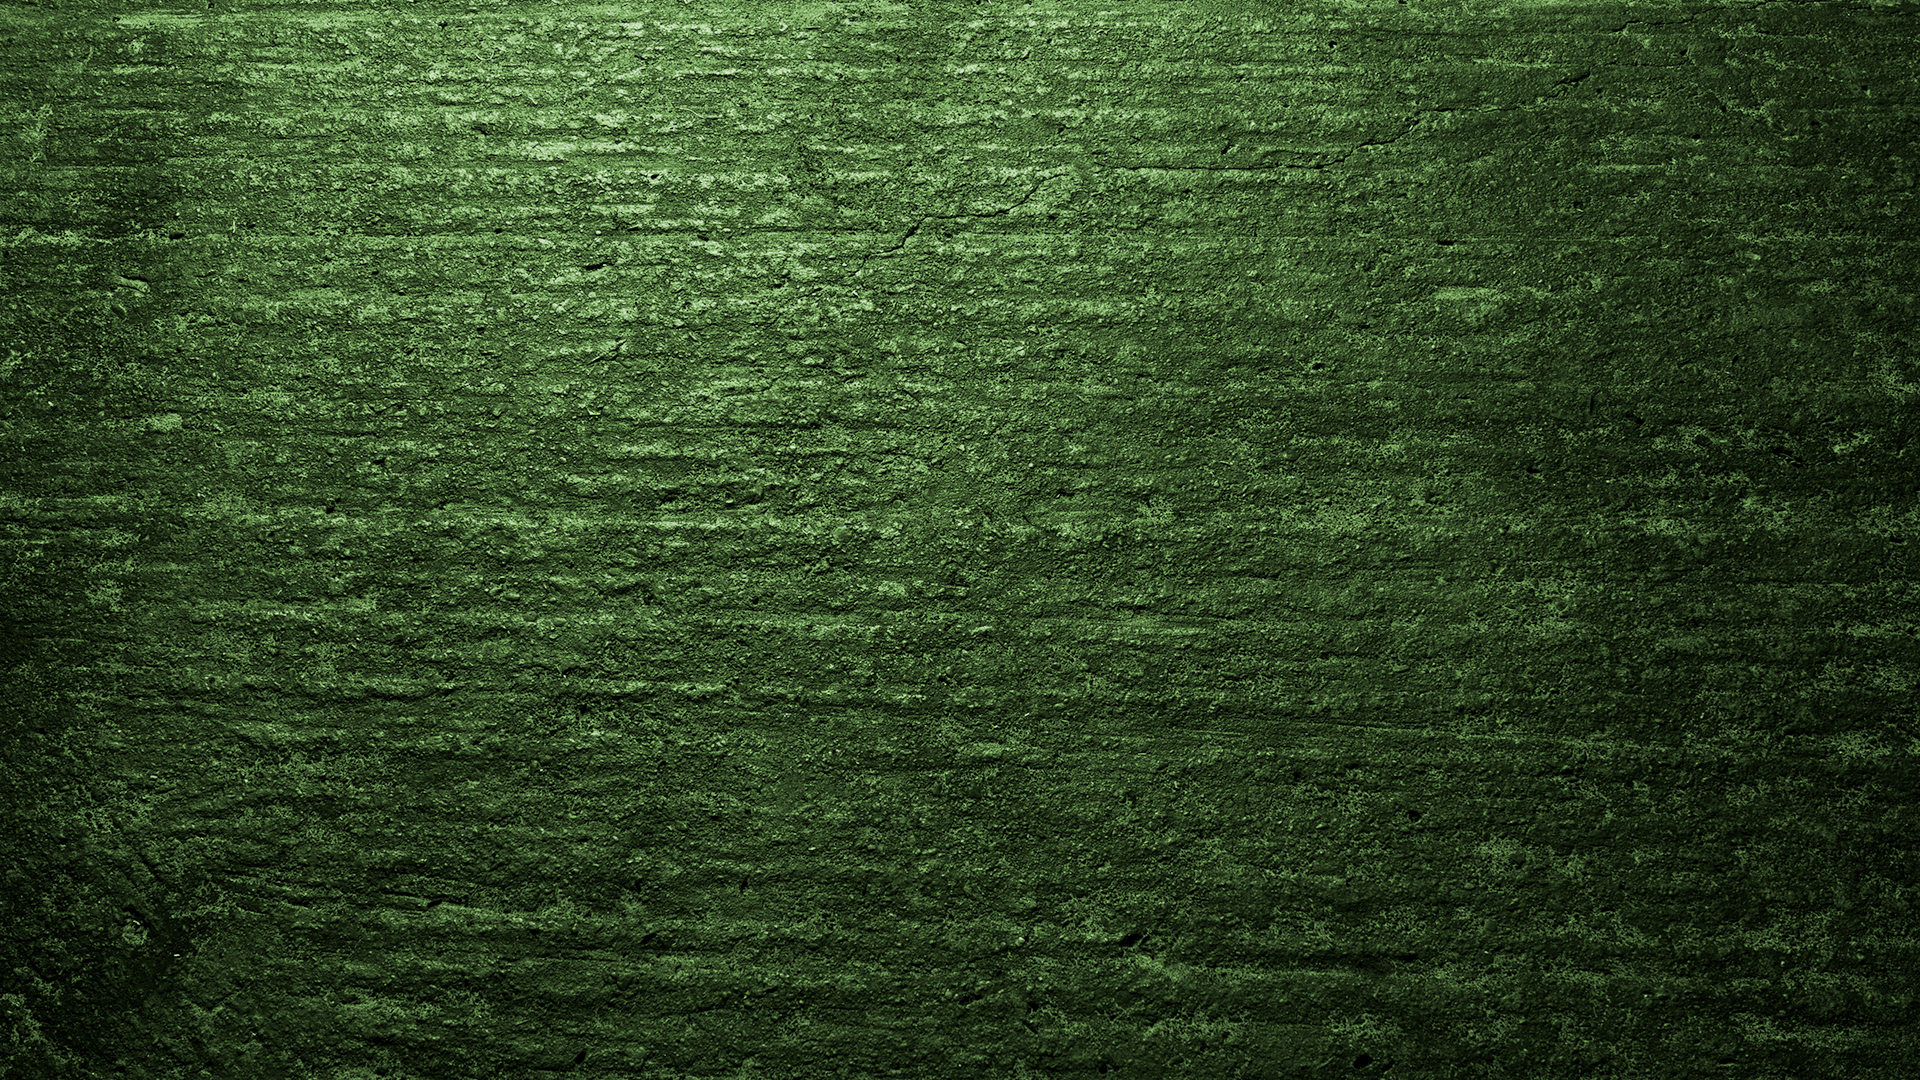 Paper backgrounds royalty free hd paper backgrounds green vintage grunge concrete texture hd 1920 x 1080p thecheapjerseys